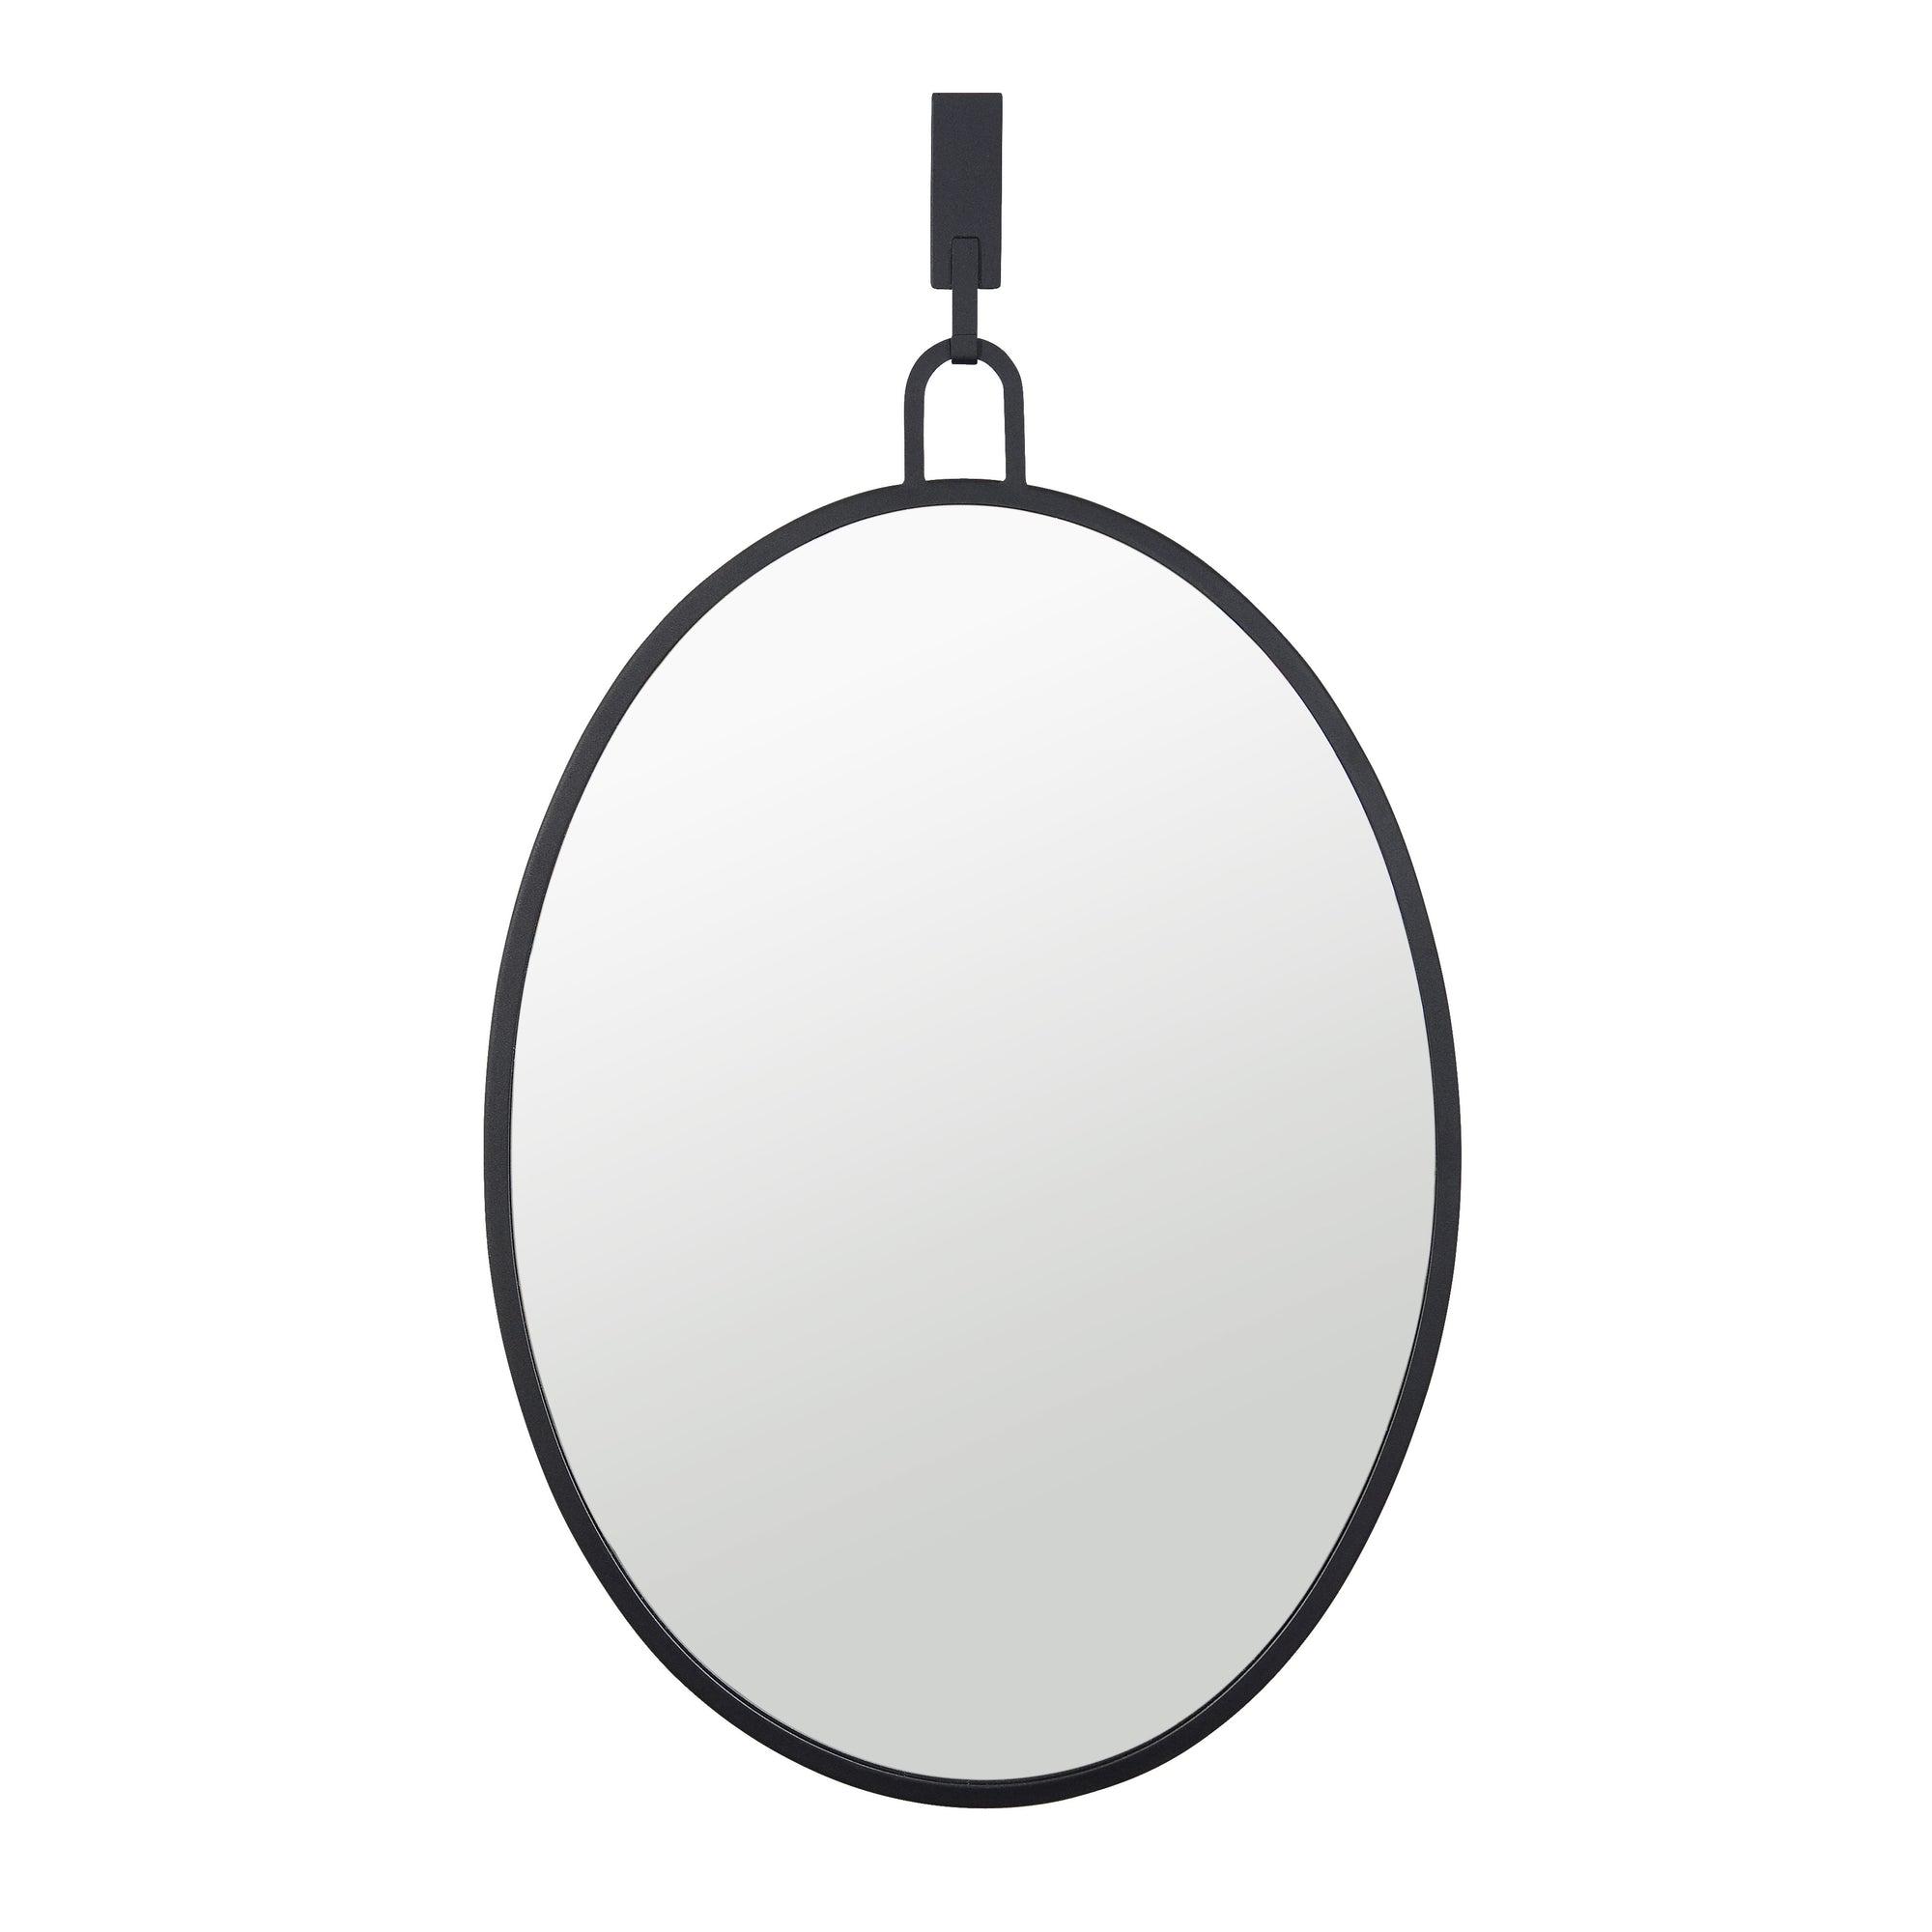 Stopwatch 22x30 Oval Powder Room Mirror - Black 4DMI0110